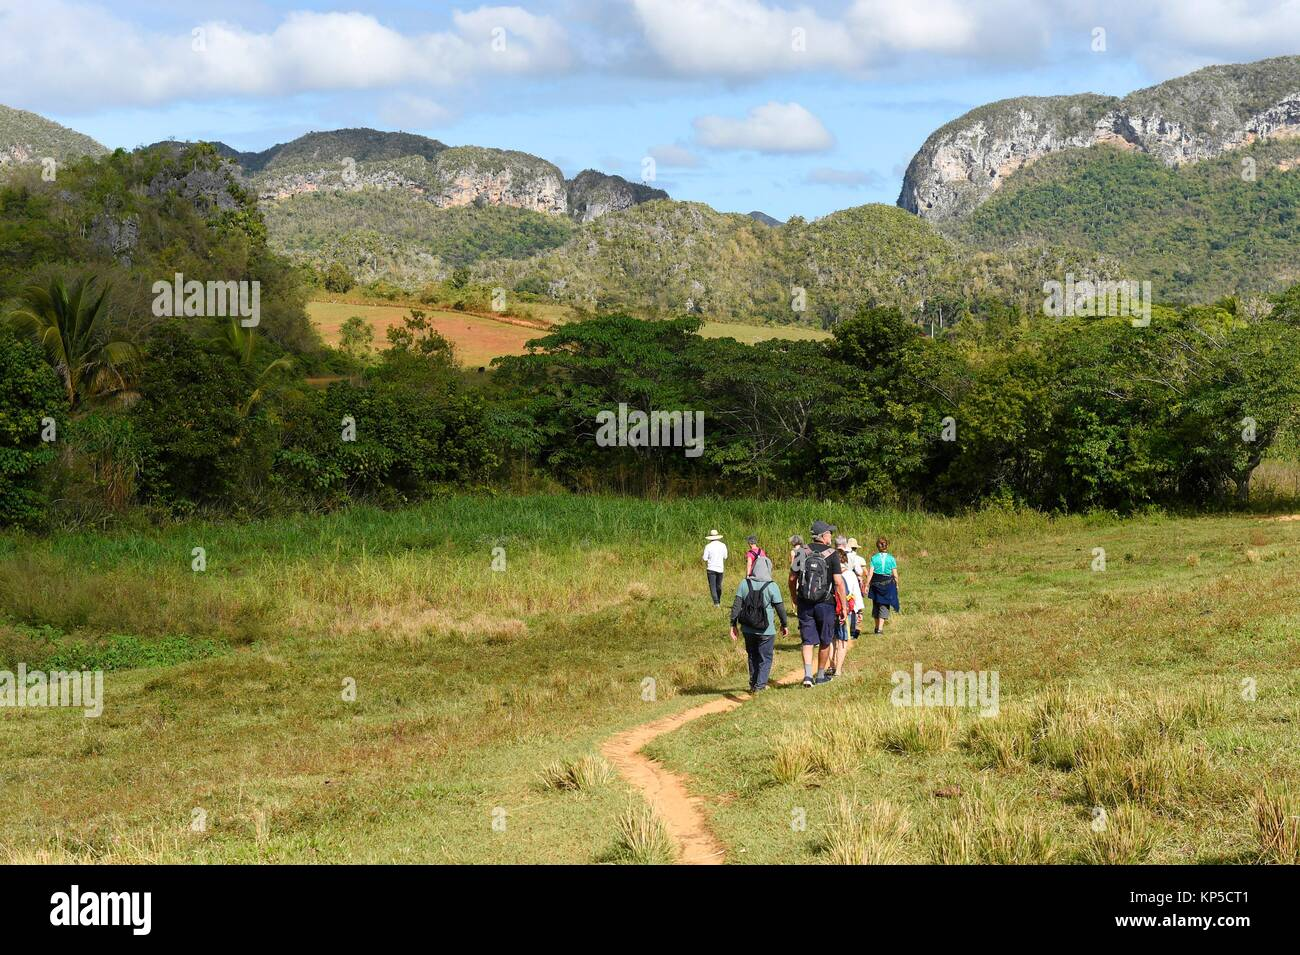 View of tourists trekking through National park of Vinales, Cuba. - Stock Image